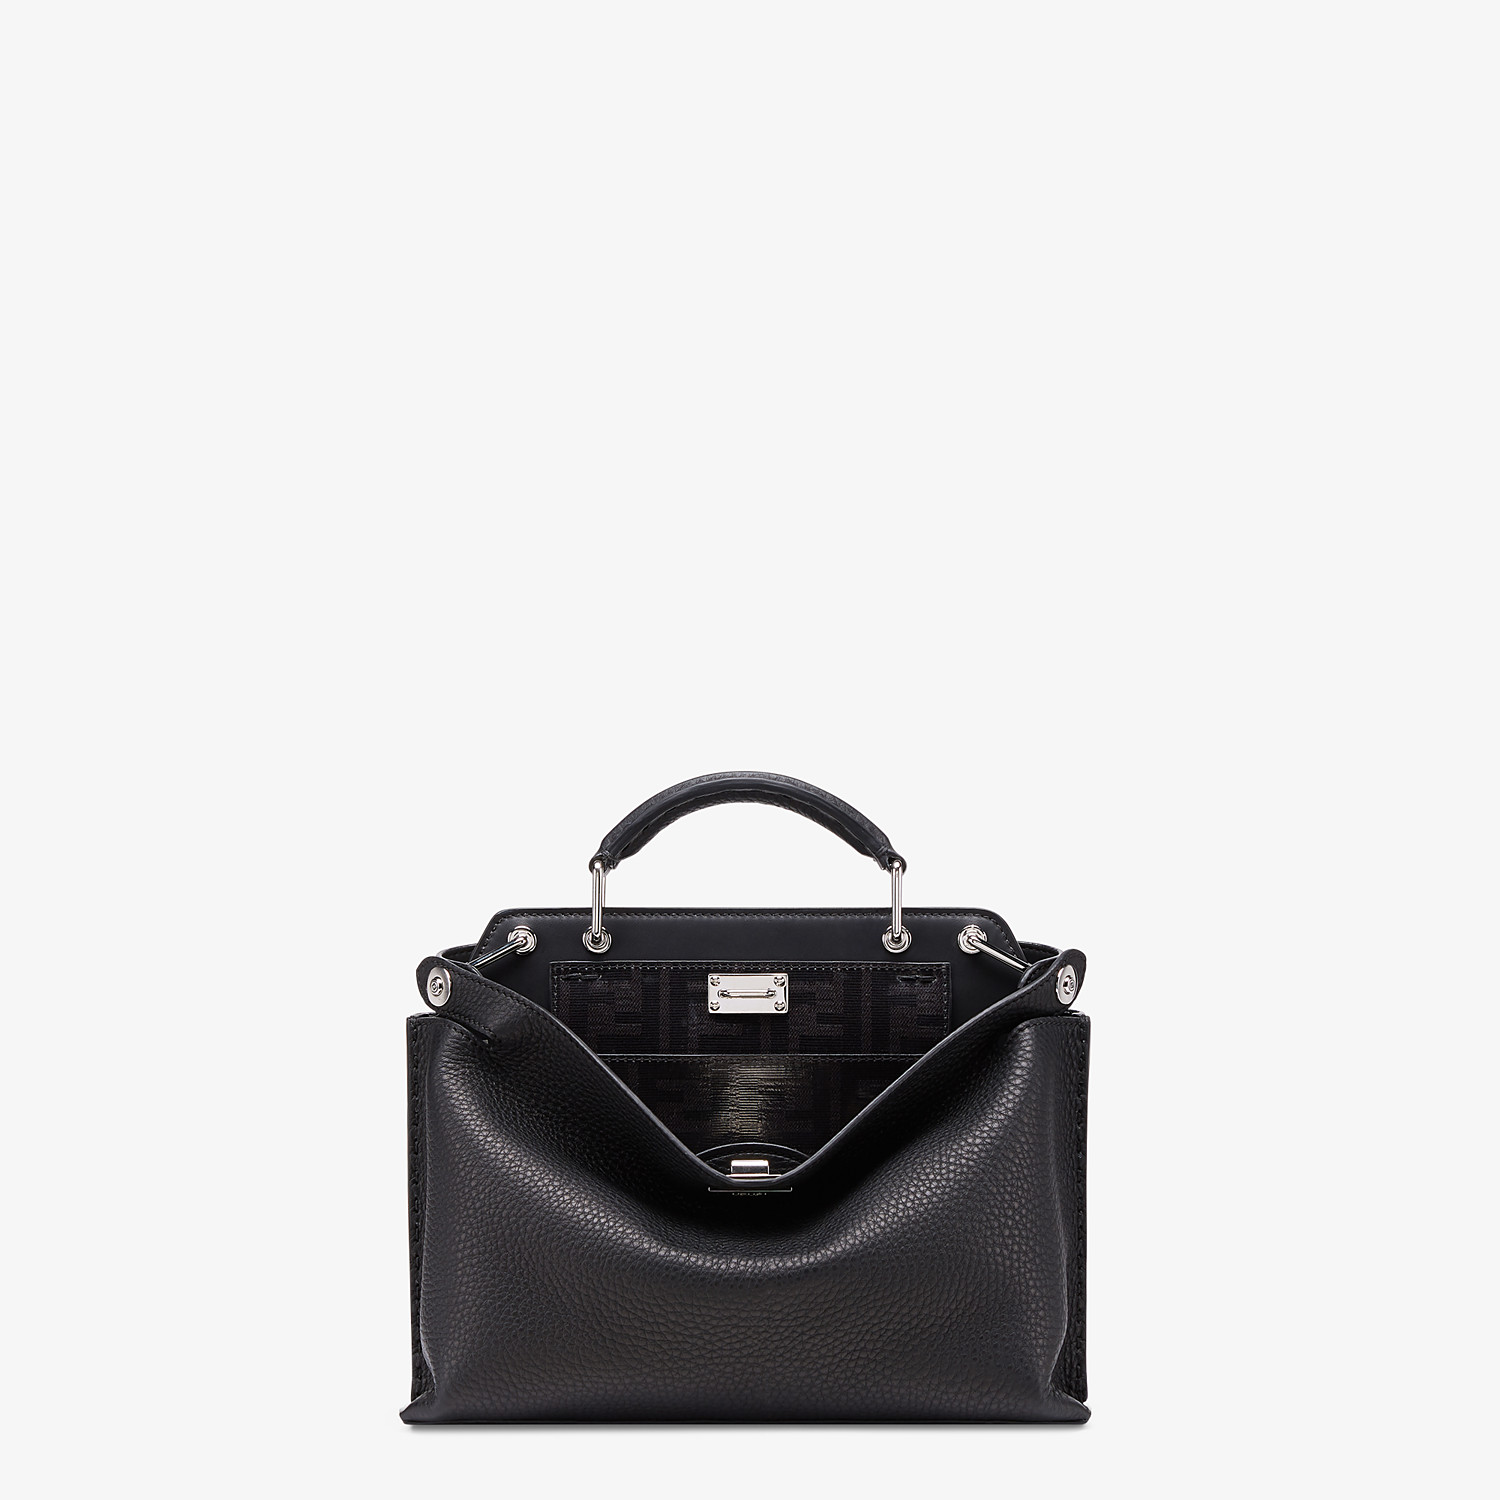 FENDI PEEKABOO ICONIC ESSENTIALLY - Black leather bag - view 1 detail